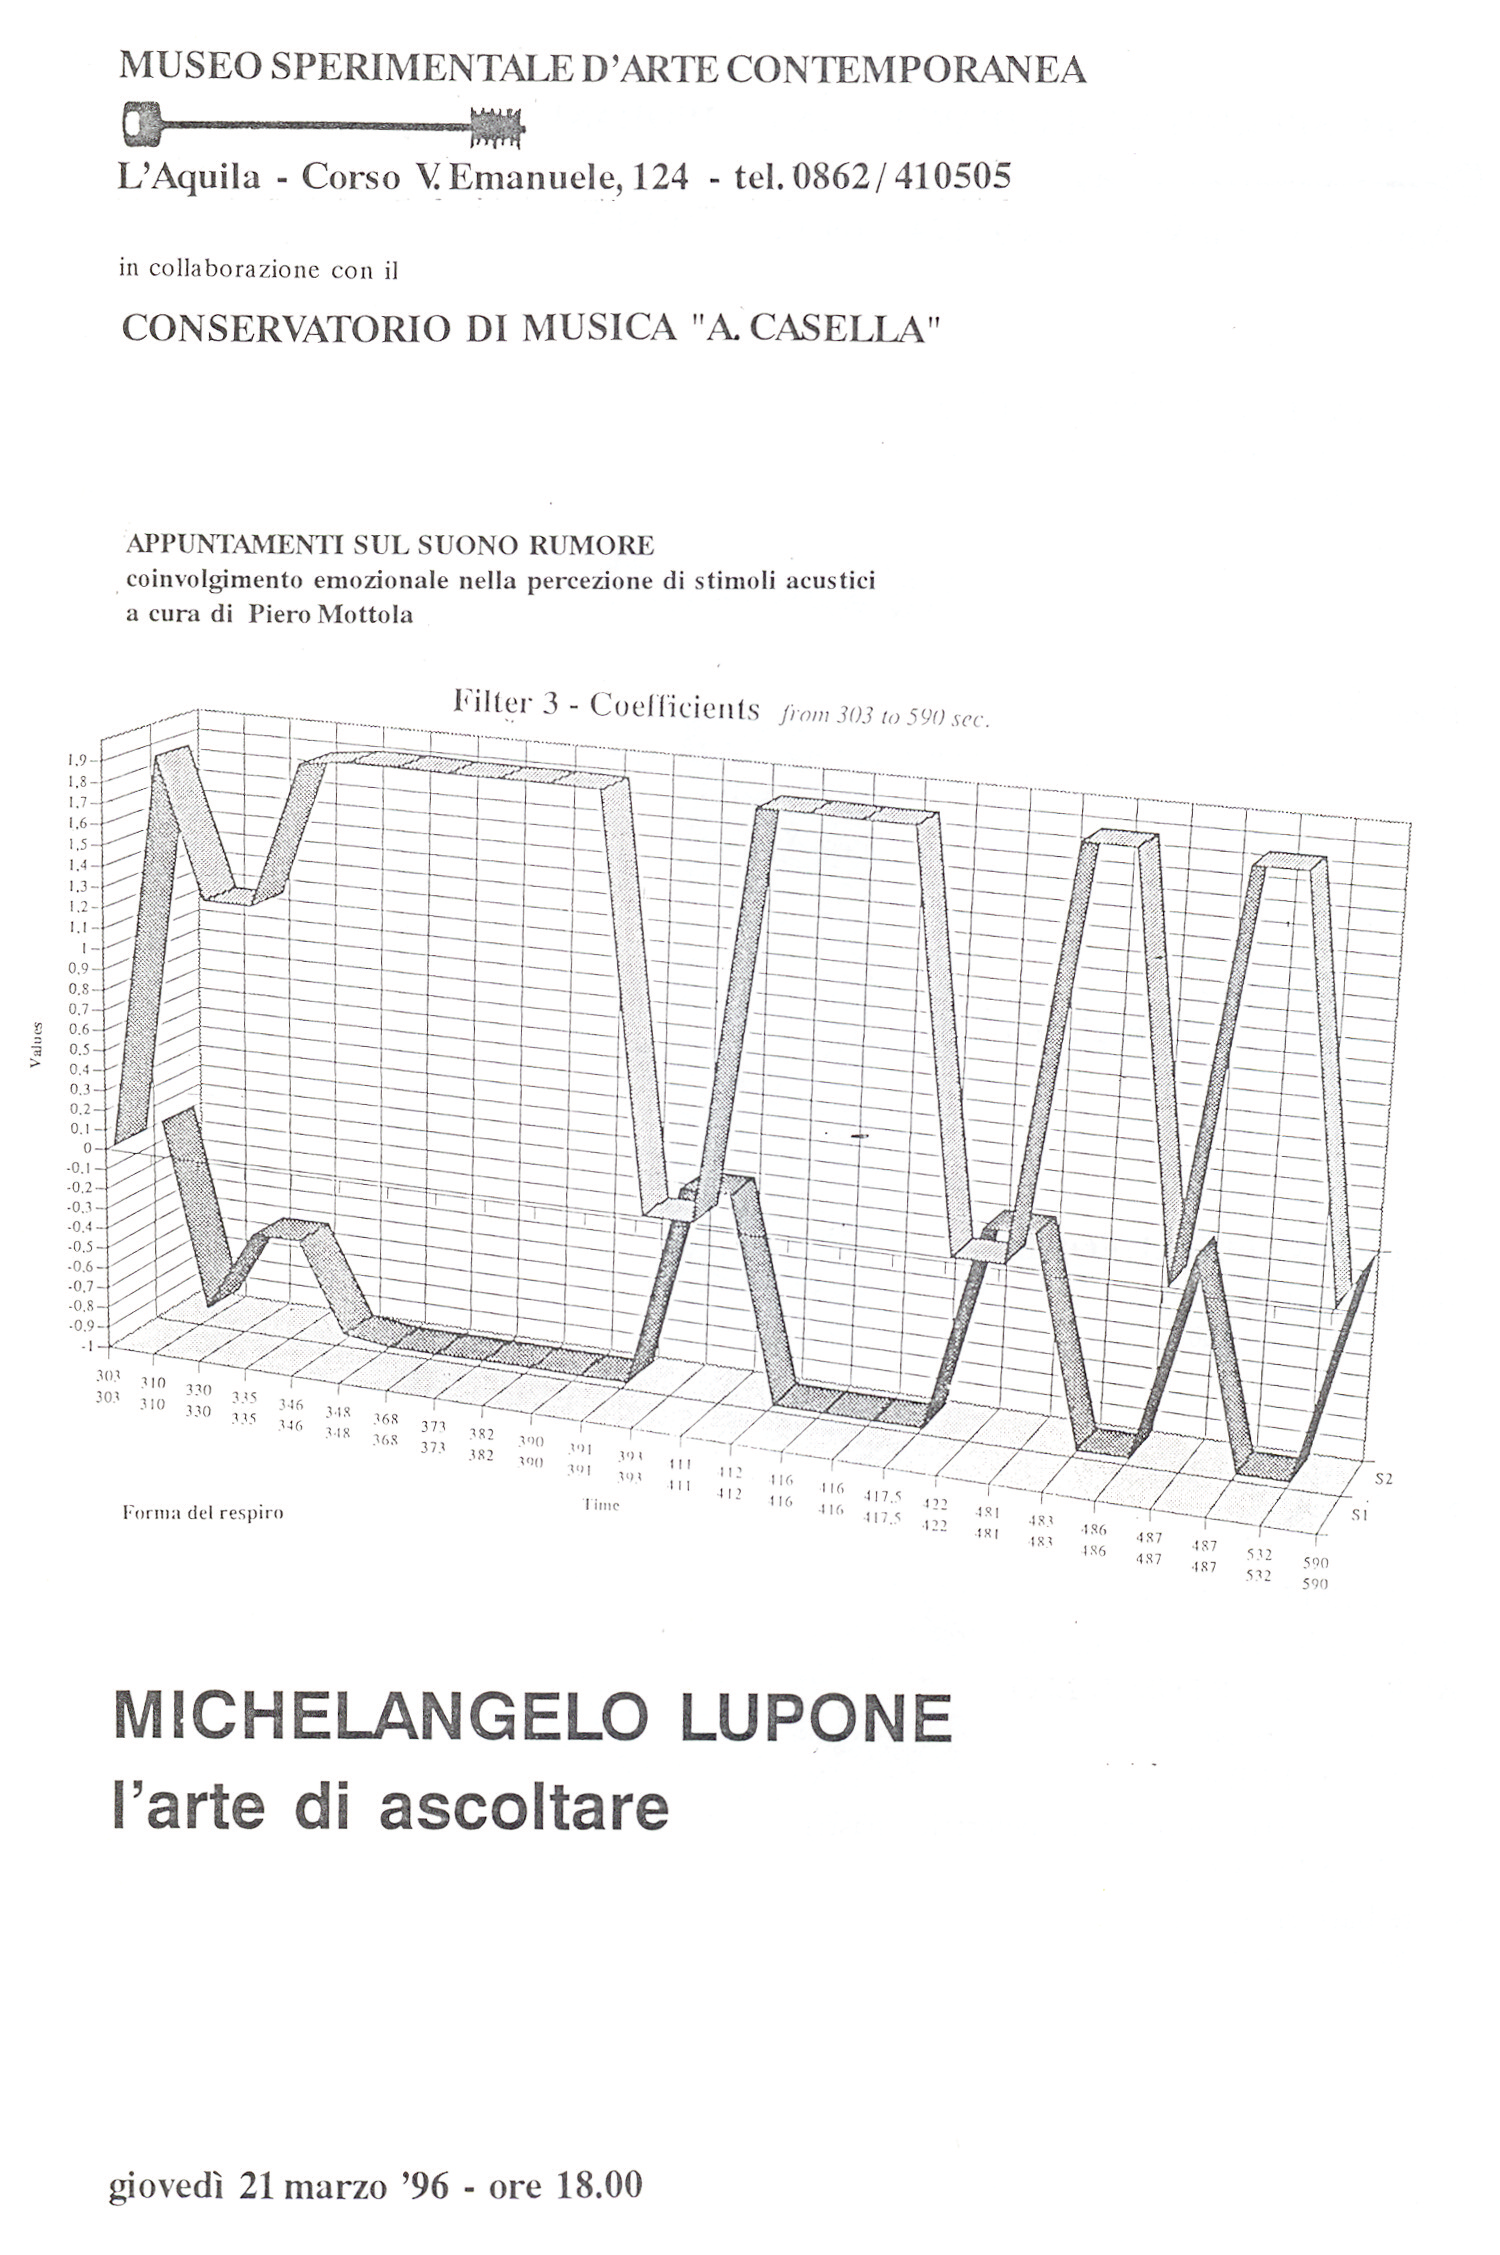 michelangelo lupone